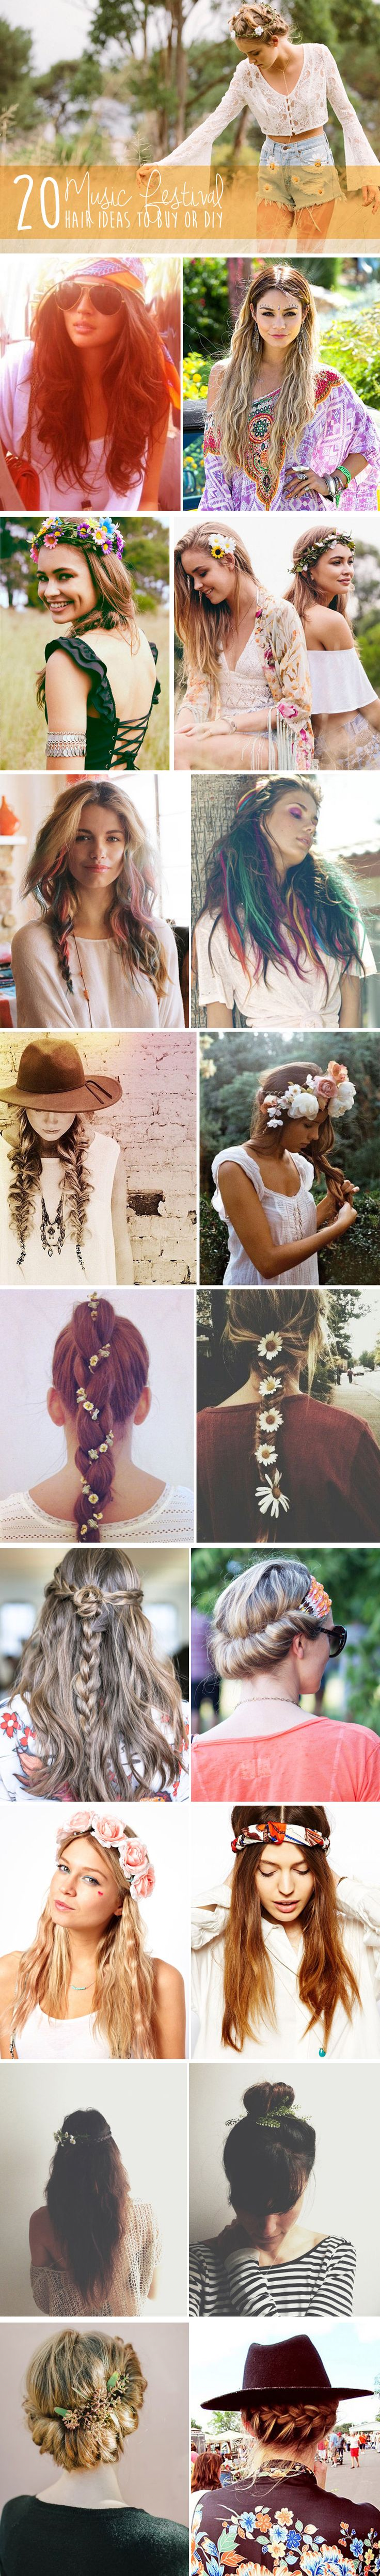 20 summer music festival hair, fashion, and style ideas in boho bohemian gypsy hippie style. For more follow www.pinterest.com/ninayay and stay positively #pinspired #pinspire @ninayay